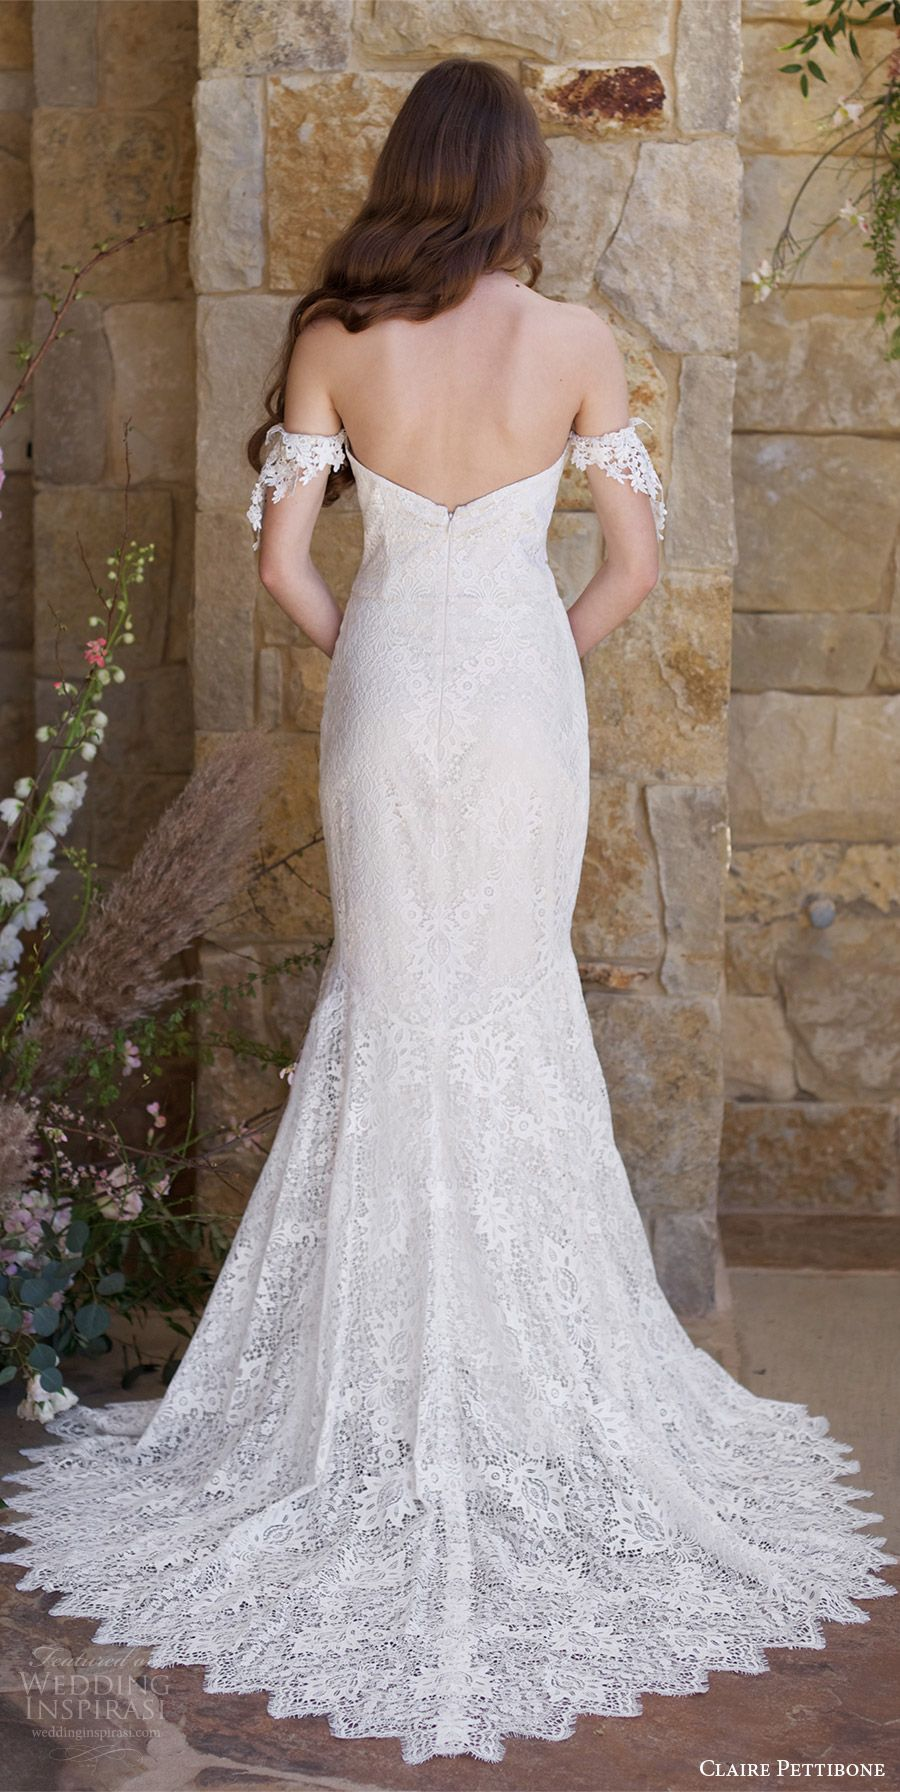 Claire pettibone romantique spring wedding dresses u the